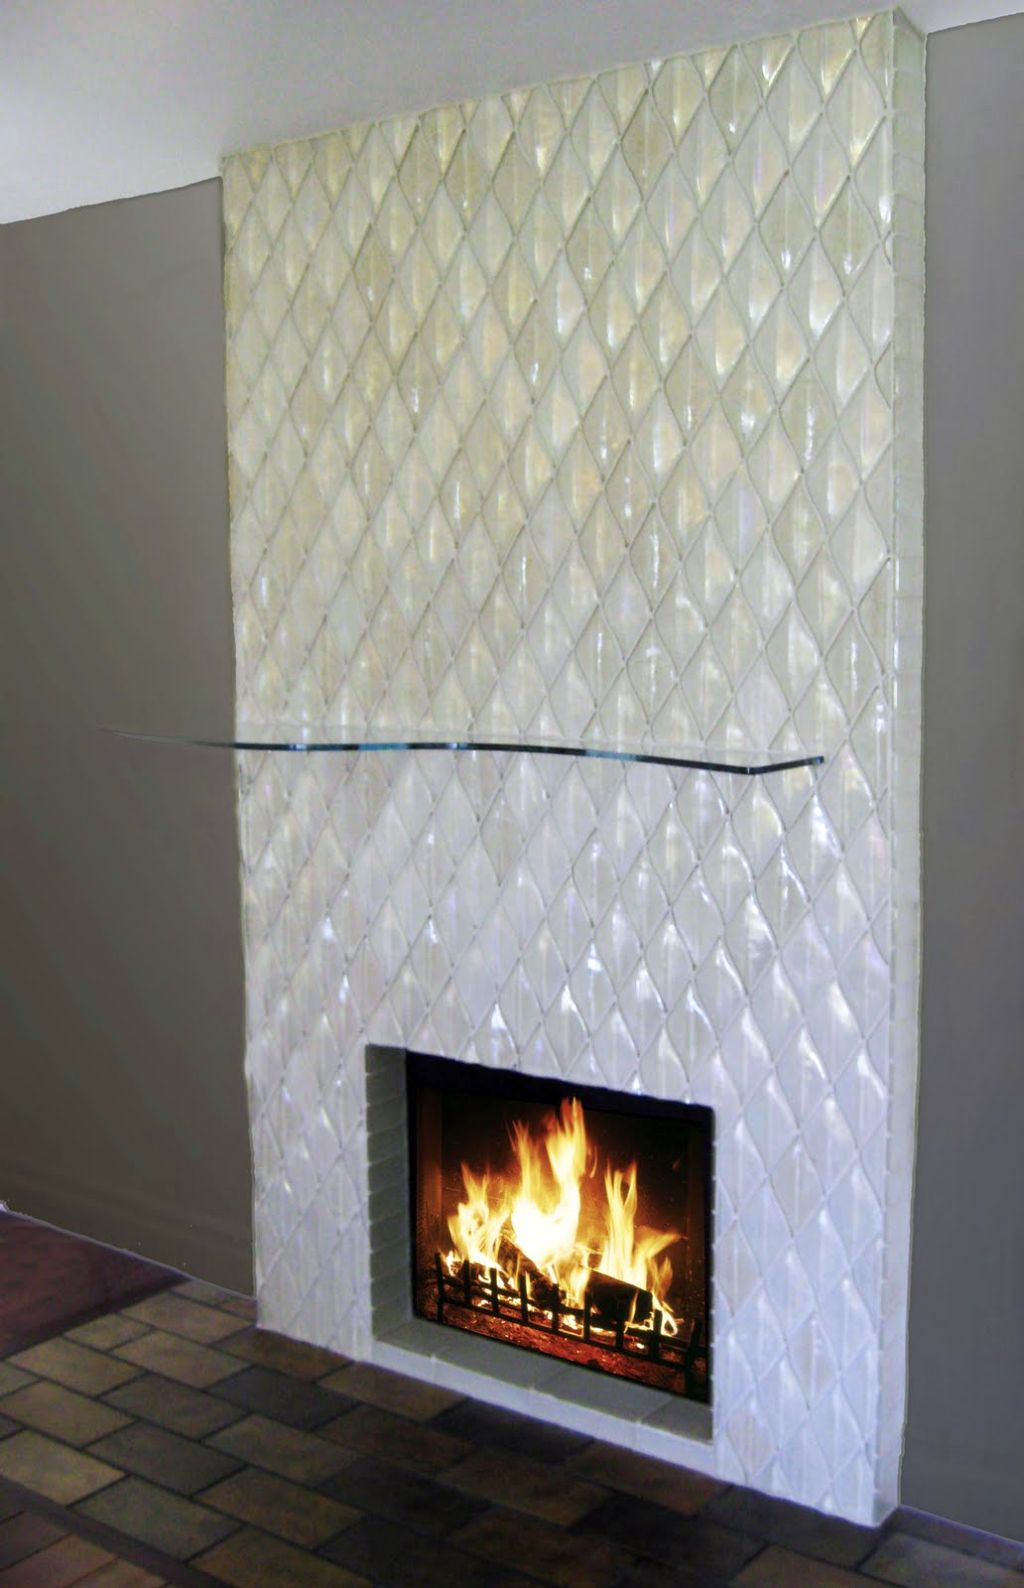 Modern fireplace designs with glass built in unique tiled wall - Build contemporary fireplace ideas ...